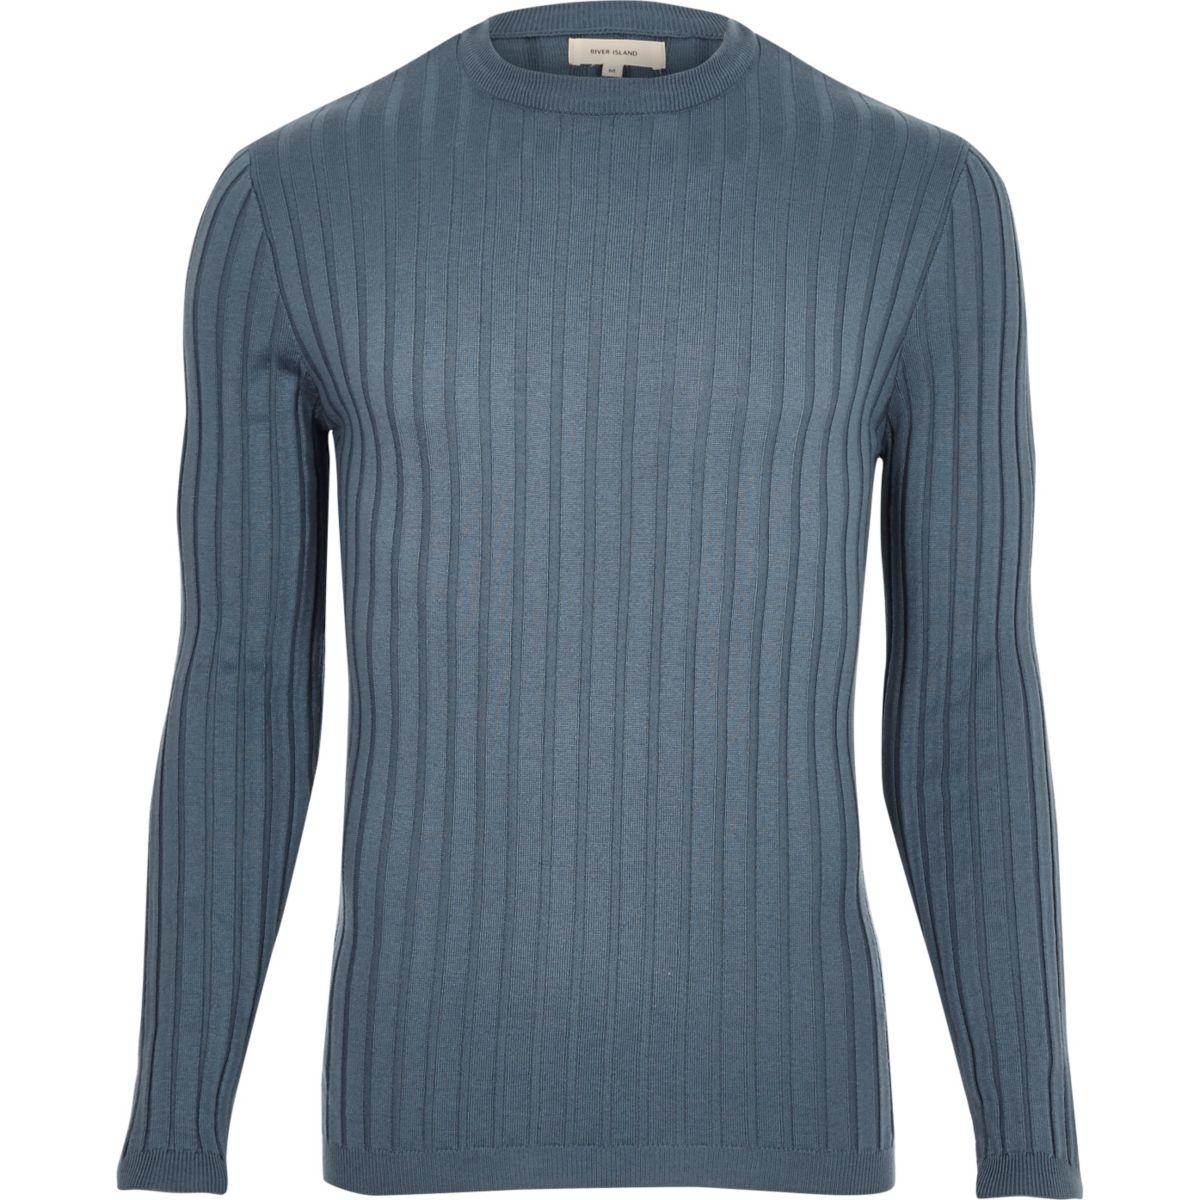 Blue muscle fit ribbed top